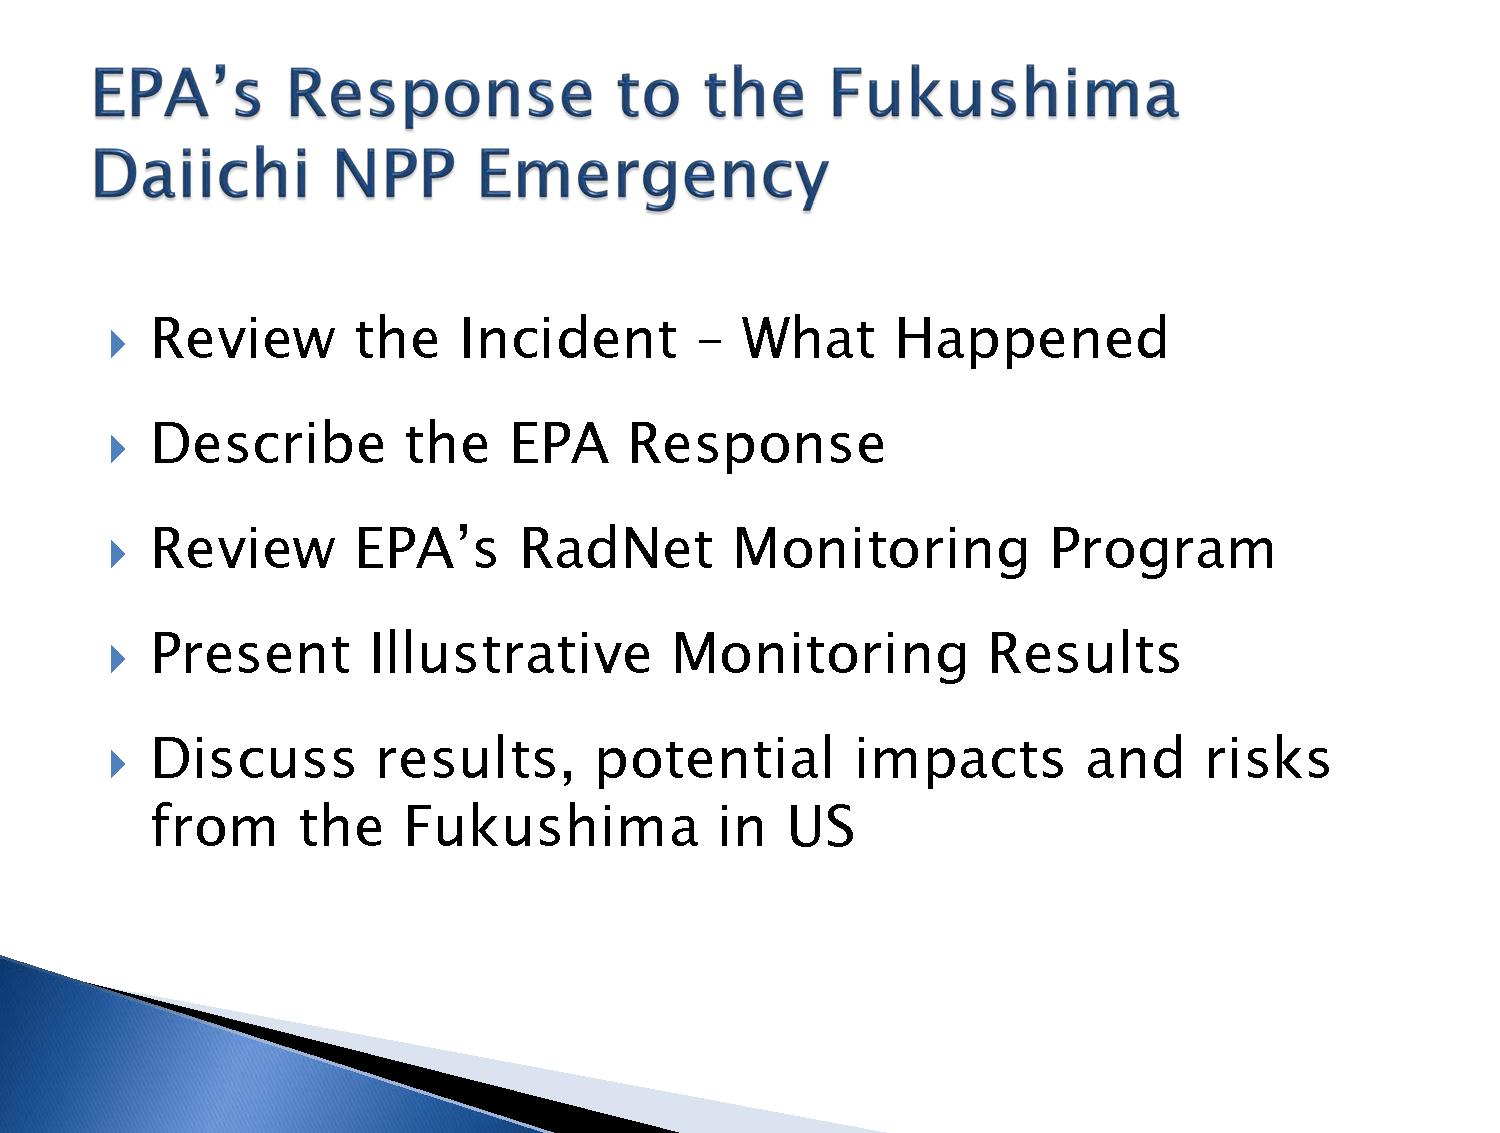 August 2011  Epa's Response To Fukushima Japan Nuclear. How To Fix The Water Heater Small New Cars. Top Credit Cards Rewards Firewall Proxy Sites. Southwest Securities Inc Diabetic Foot Images. Address Matching Software On Line Journalism. Learn Management System Miss Cleo Call Me Now. Travel Agency School Online Are Bonds Safe. What Are The Symptoms Schizophrenia. Transportation In Egypt Business Credit Check